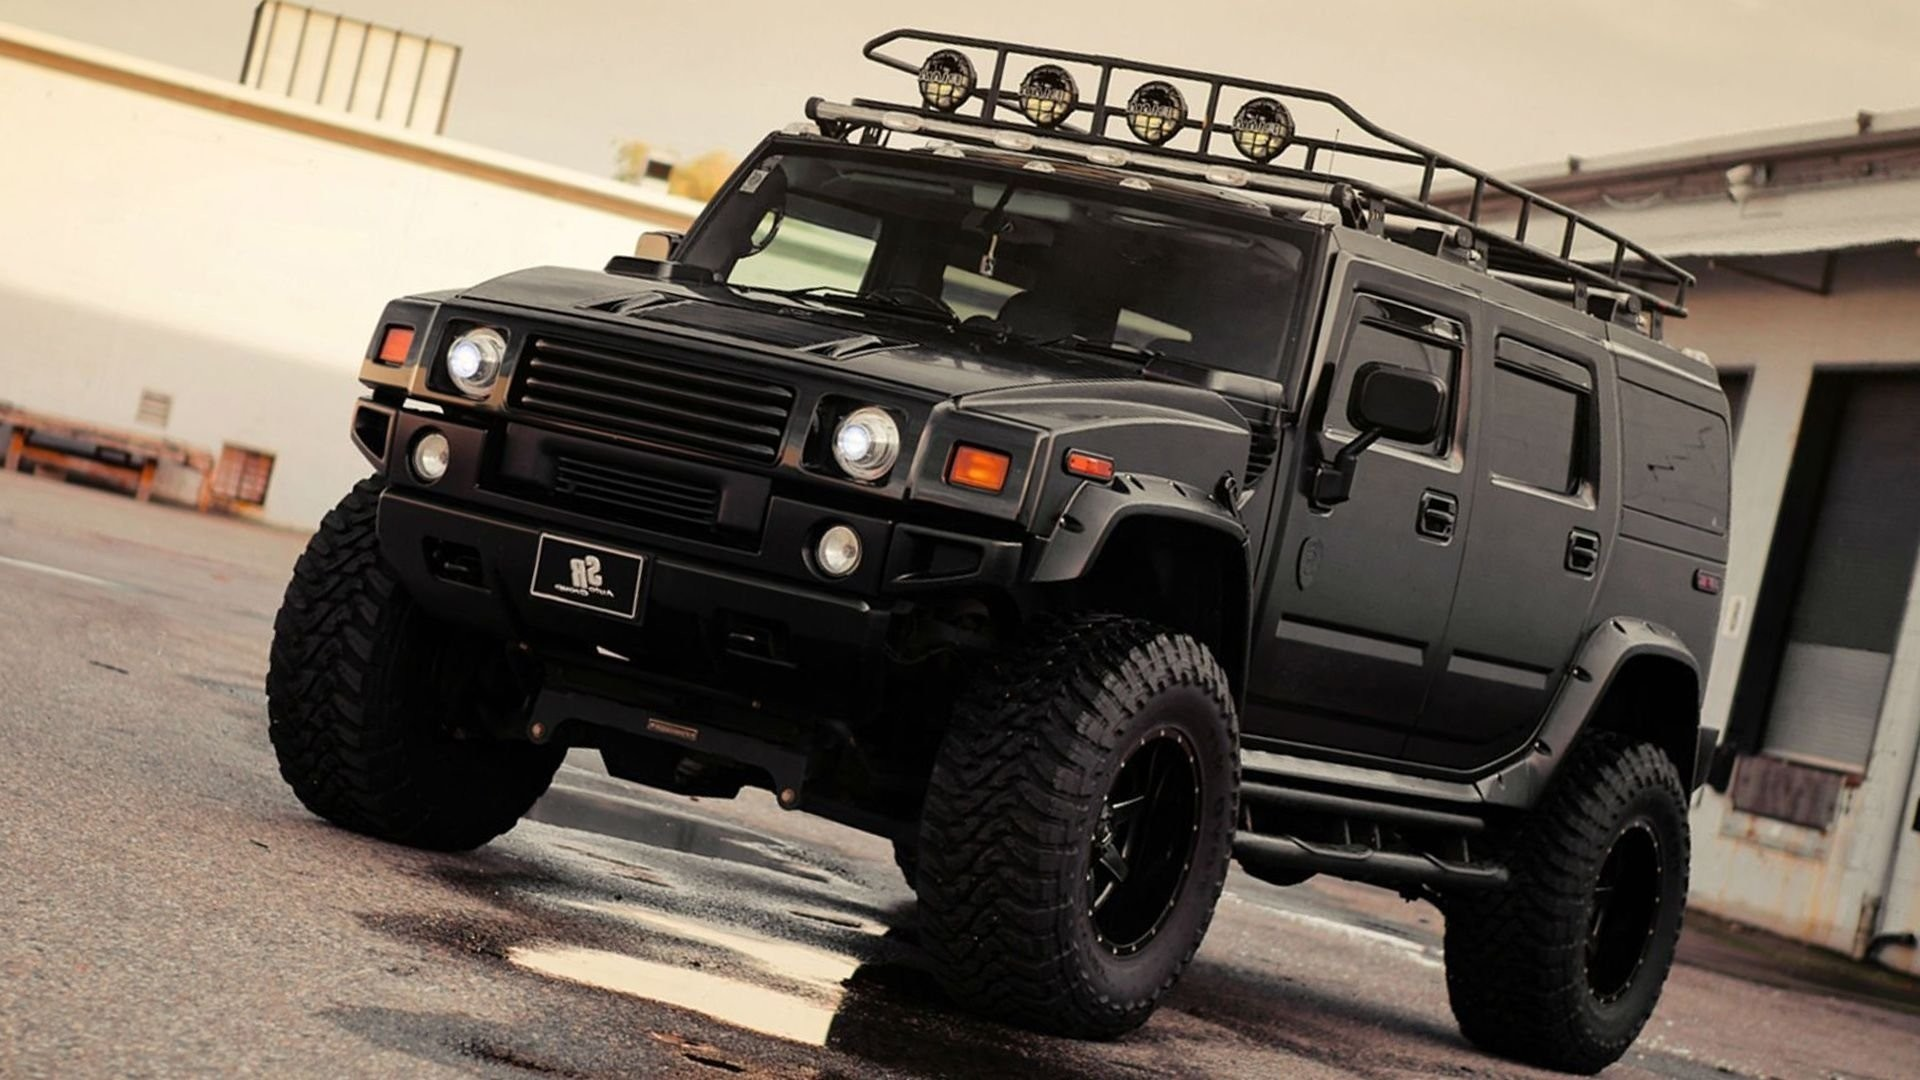 Hummer Car Wallpapers 2018 62 Images